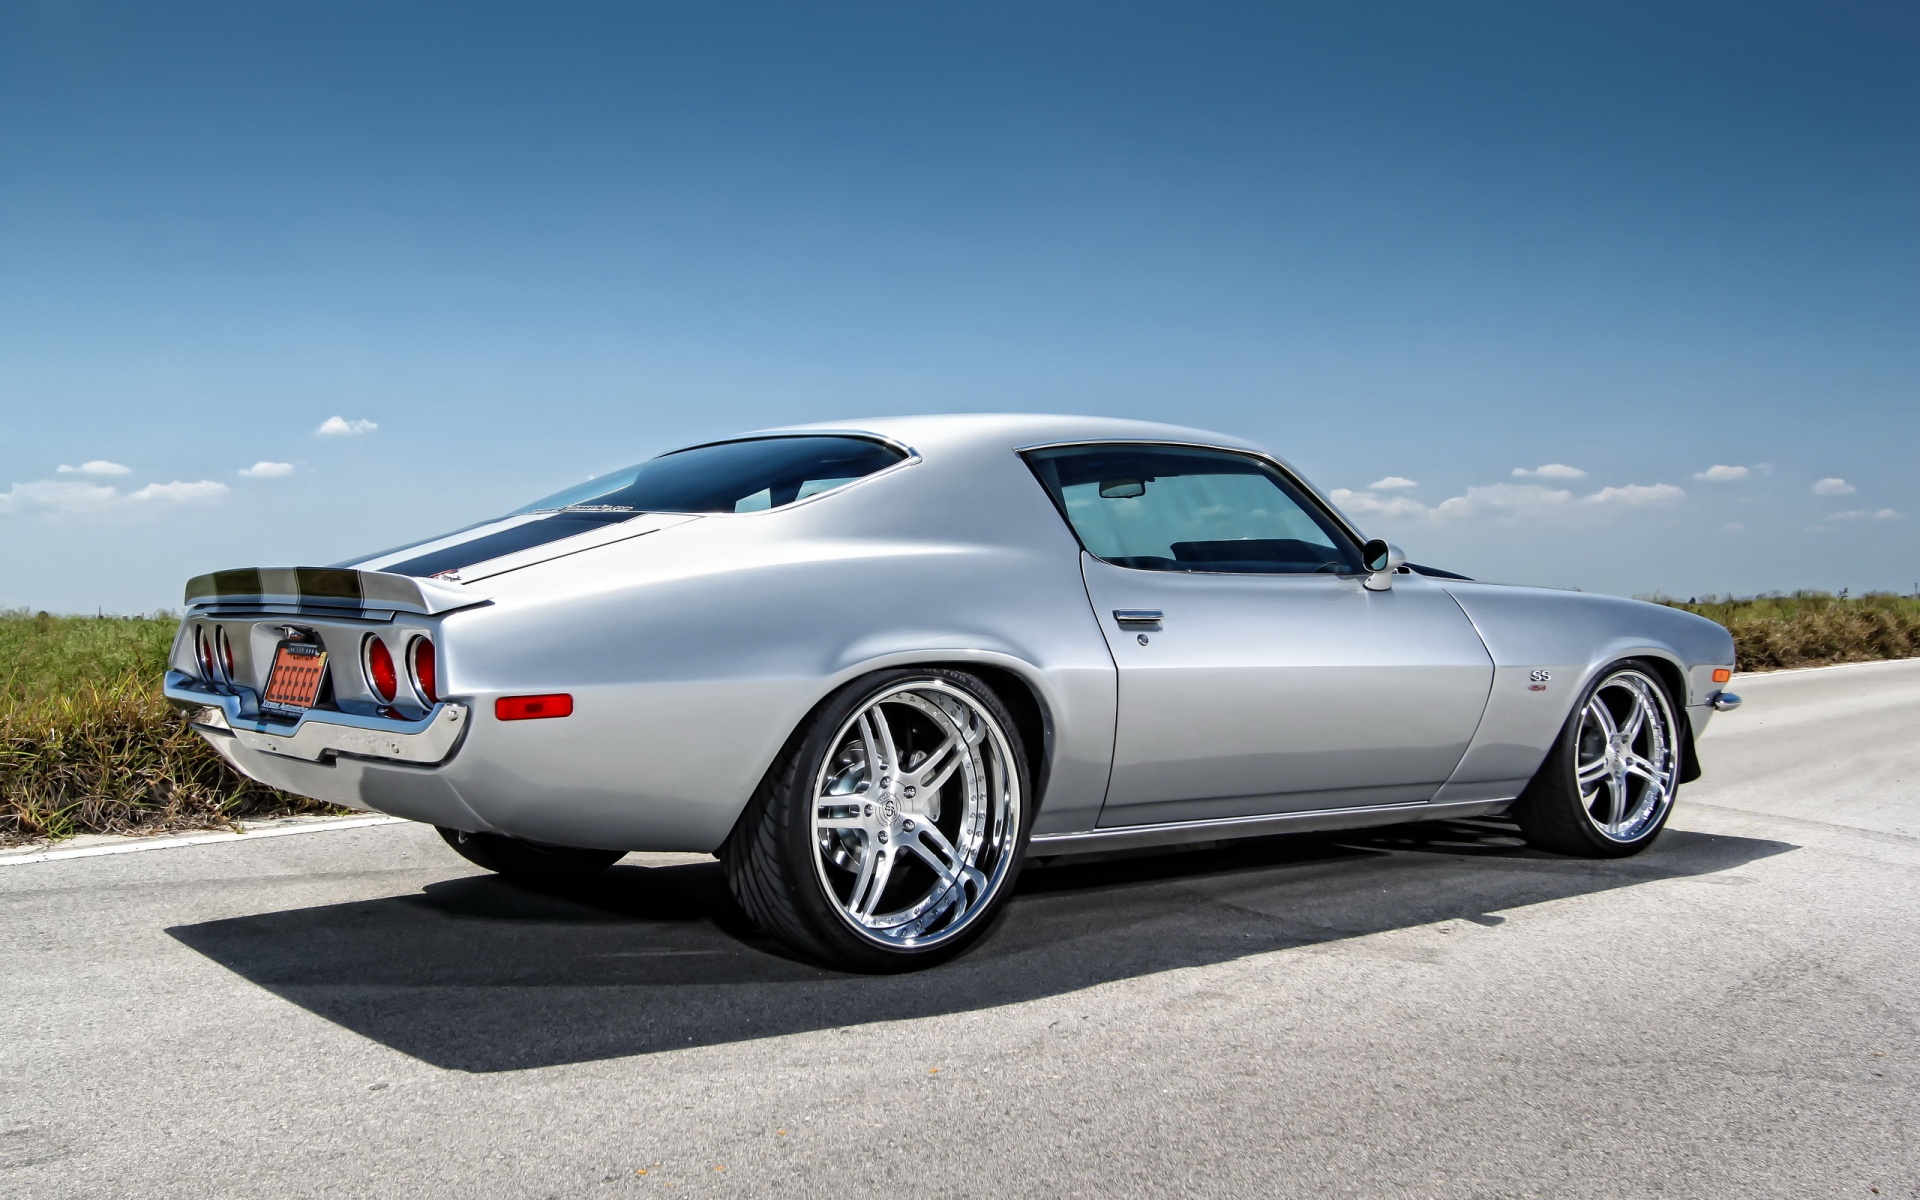 Chevy camaro muscle car Wallpaper in 1920x1200 Widescreen